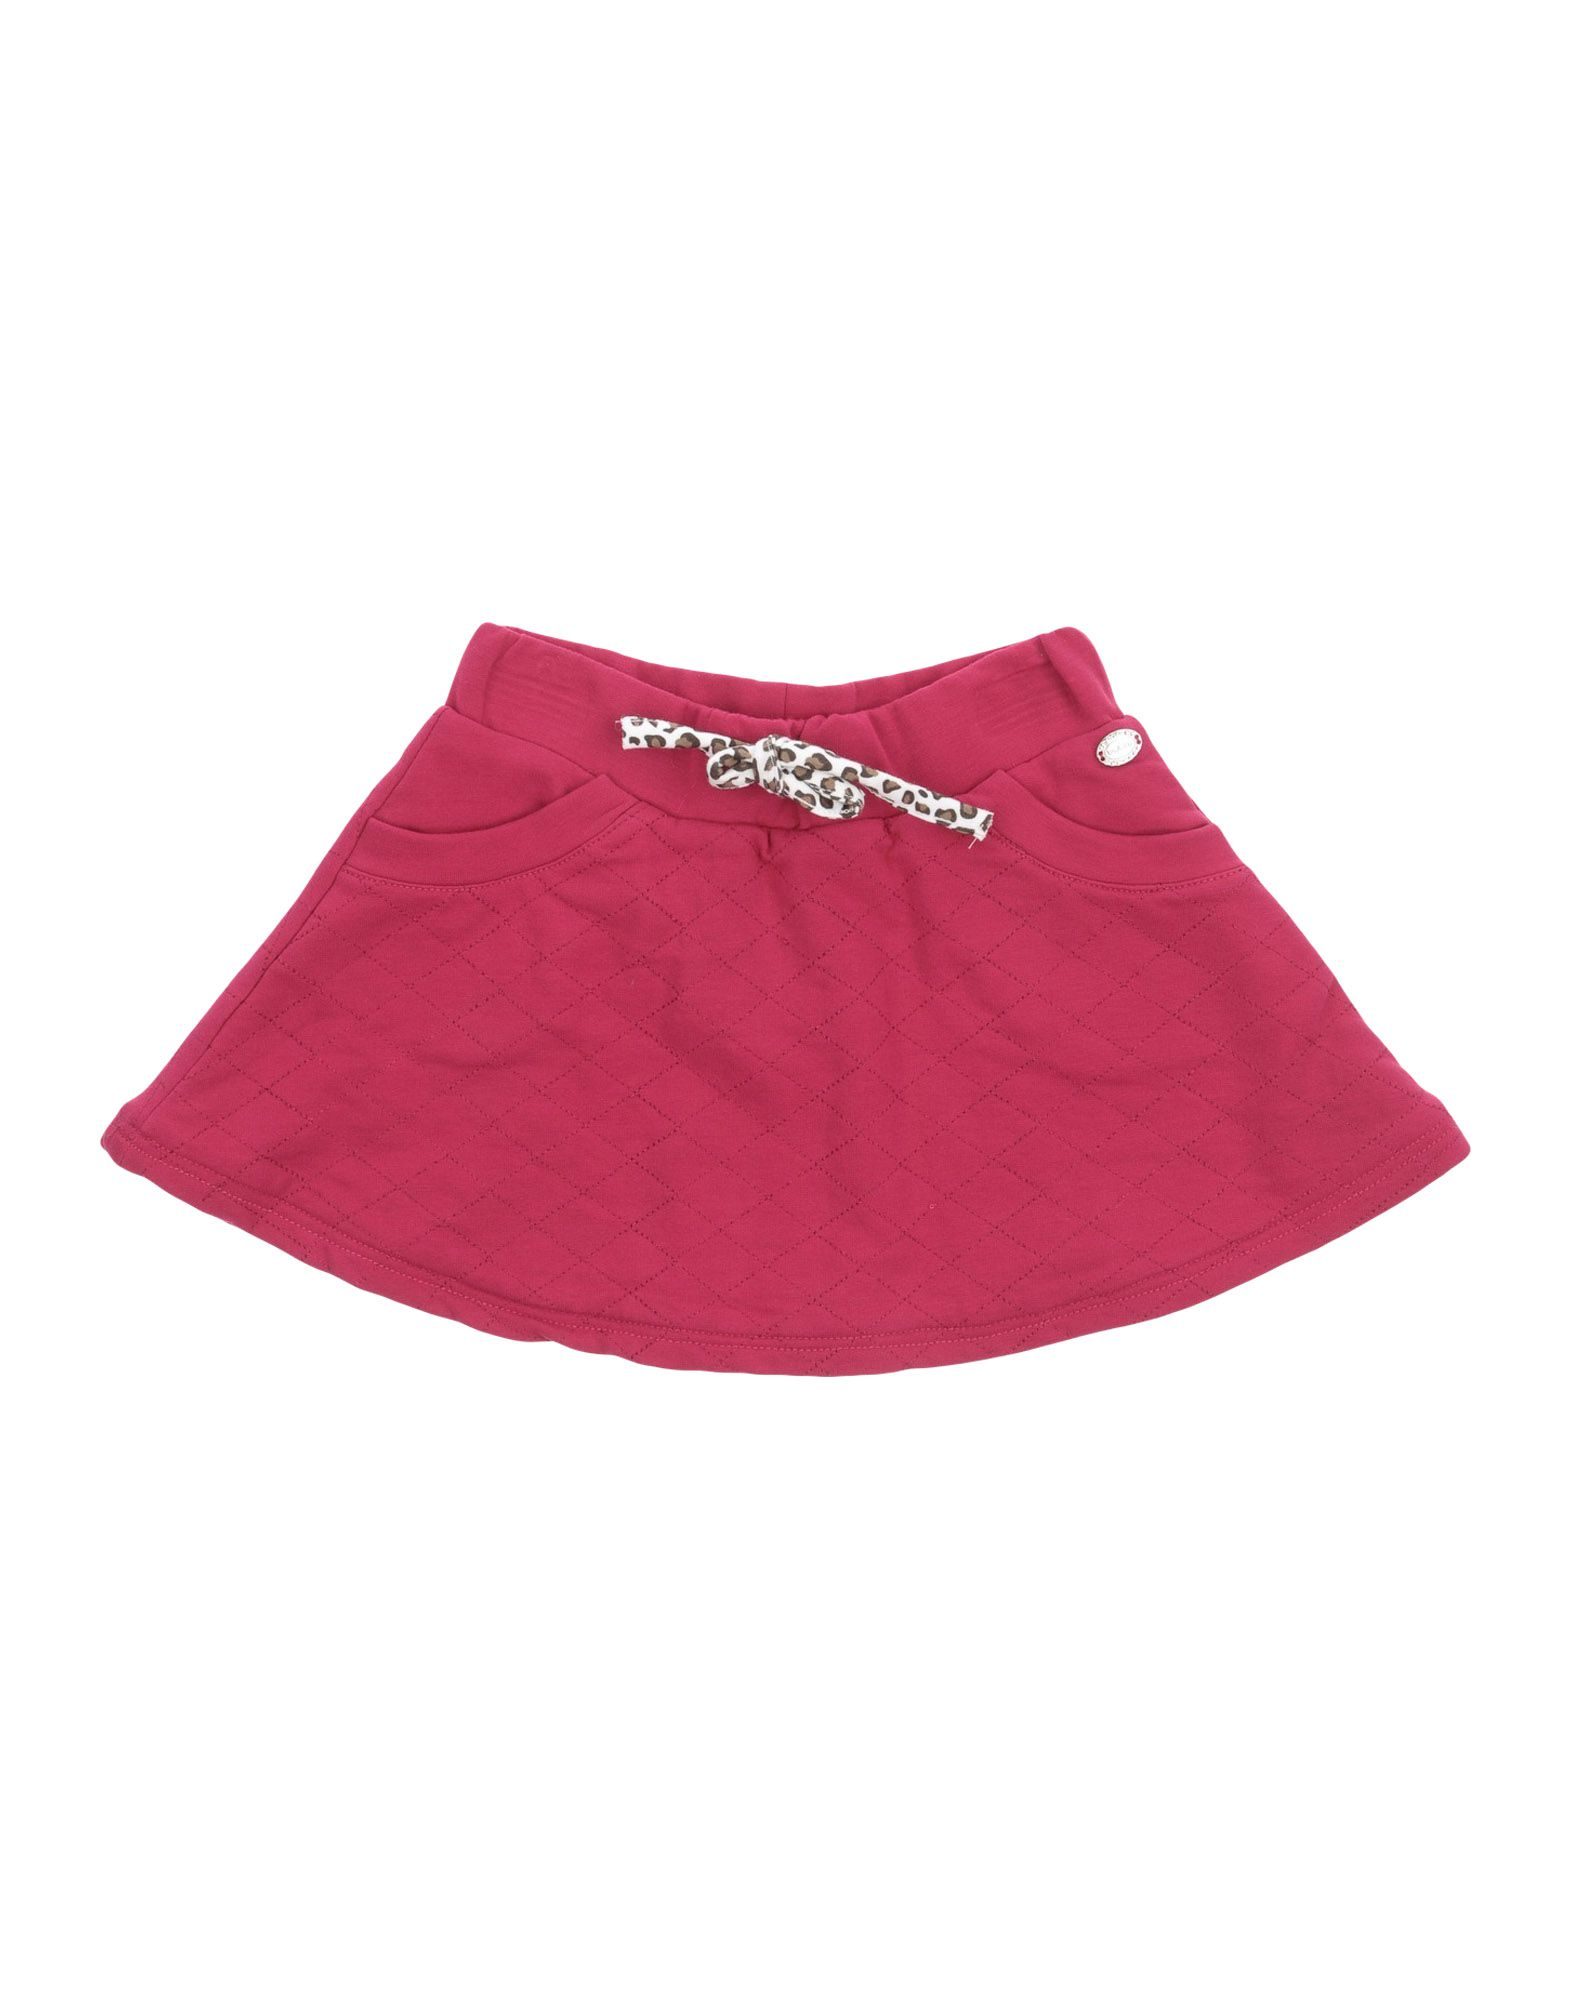 BYBLOS | BYBLOS Skirts 35362414 | Goxip